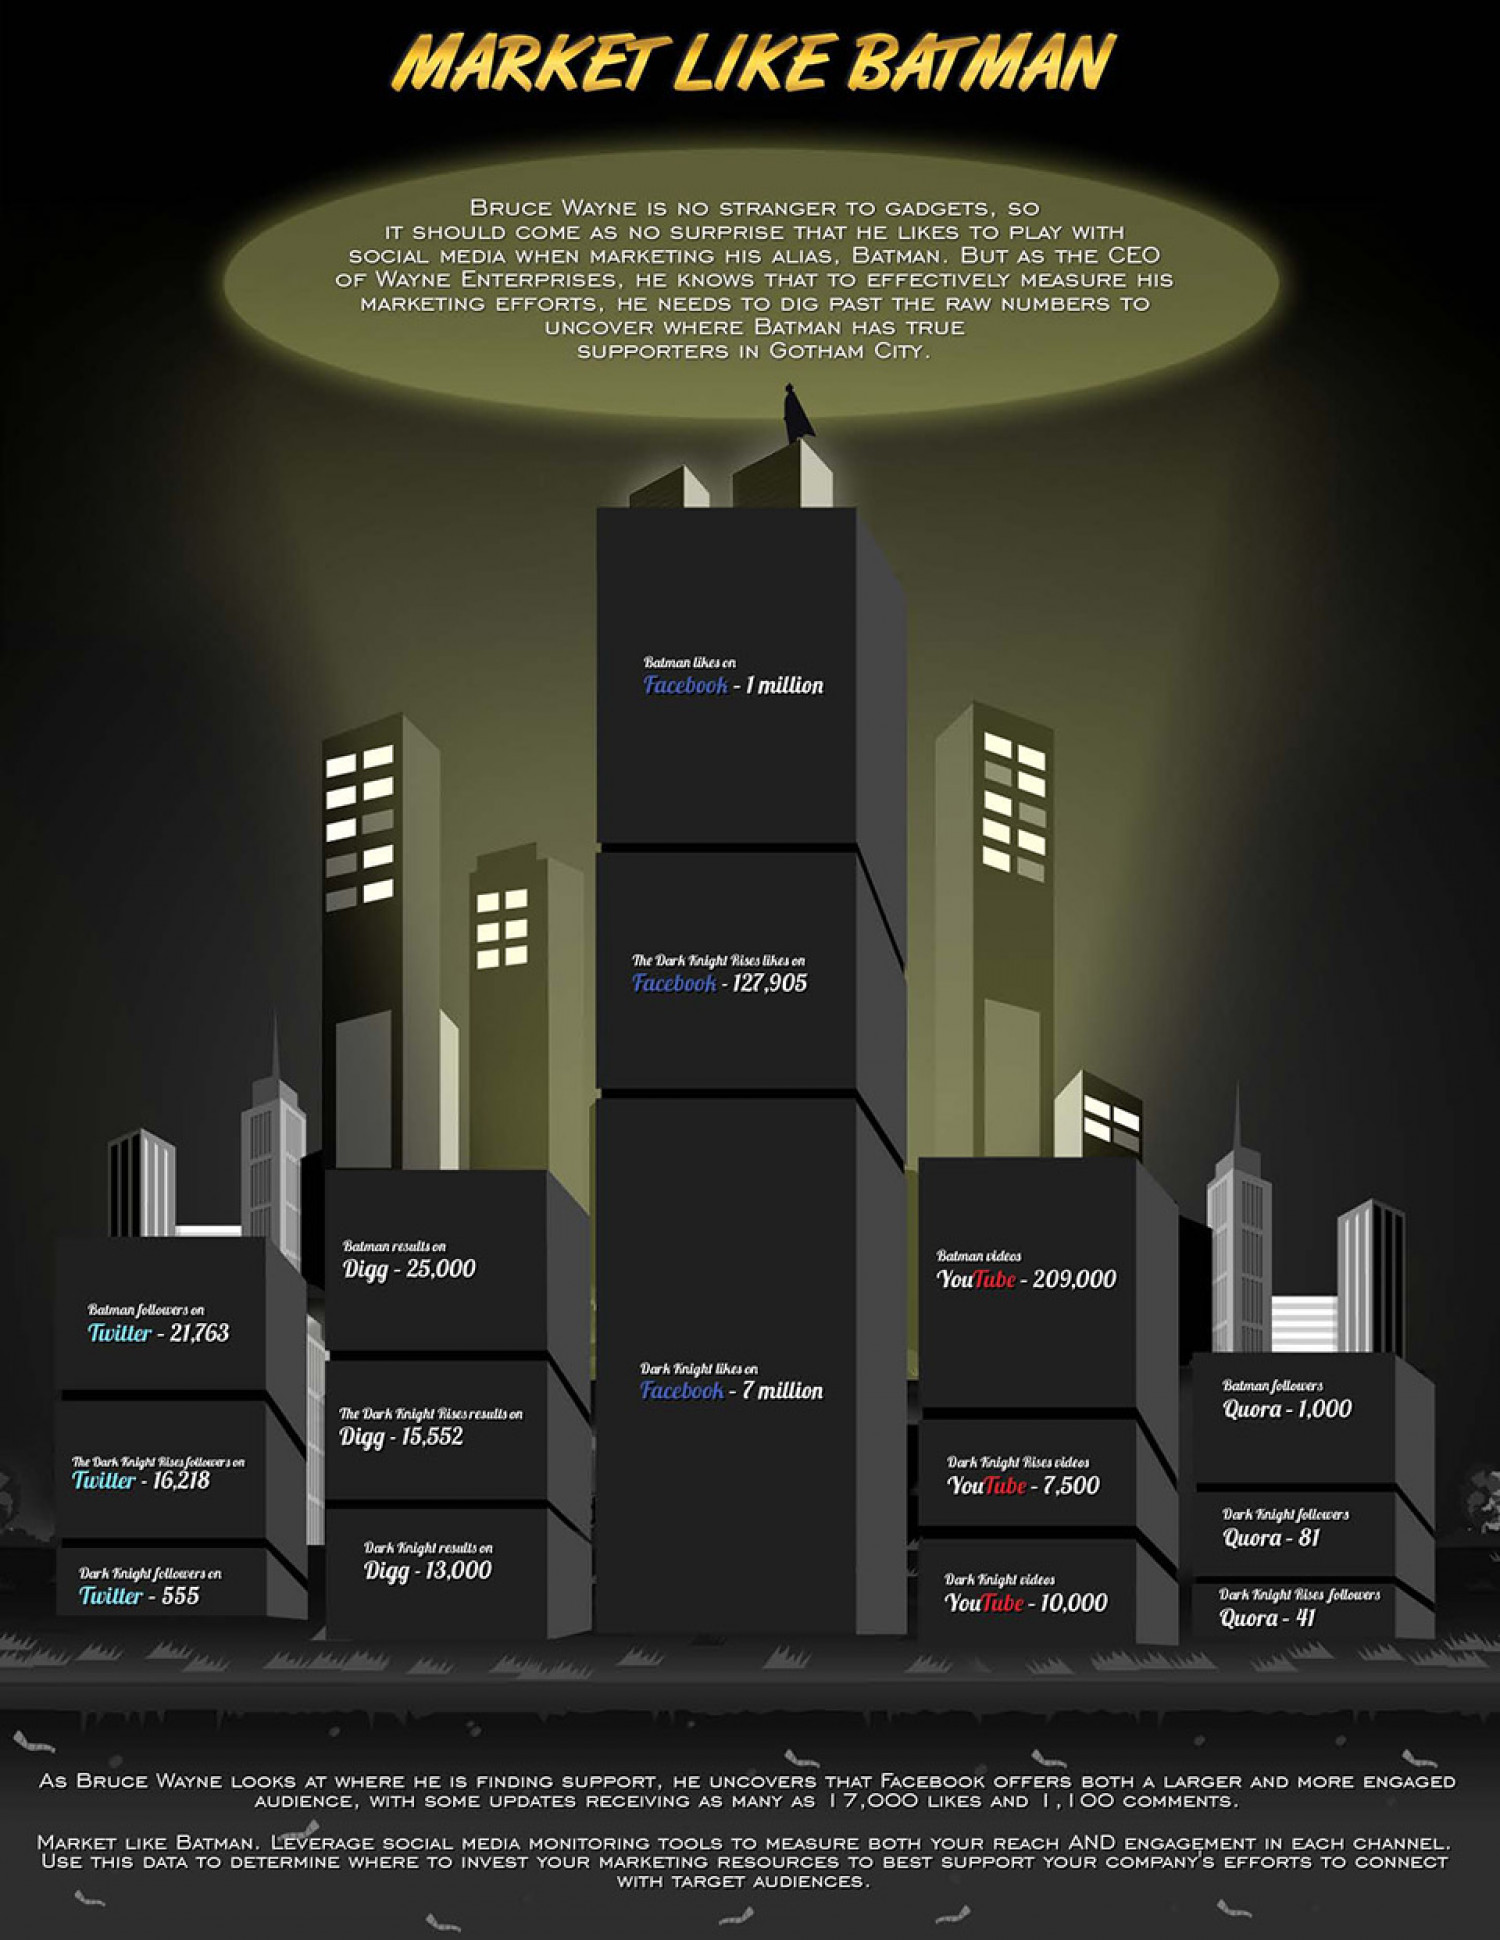 Market Like Batman Infographic